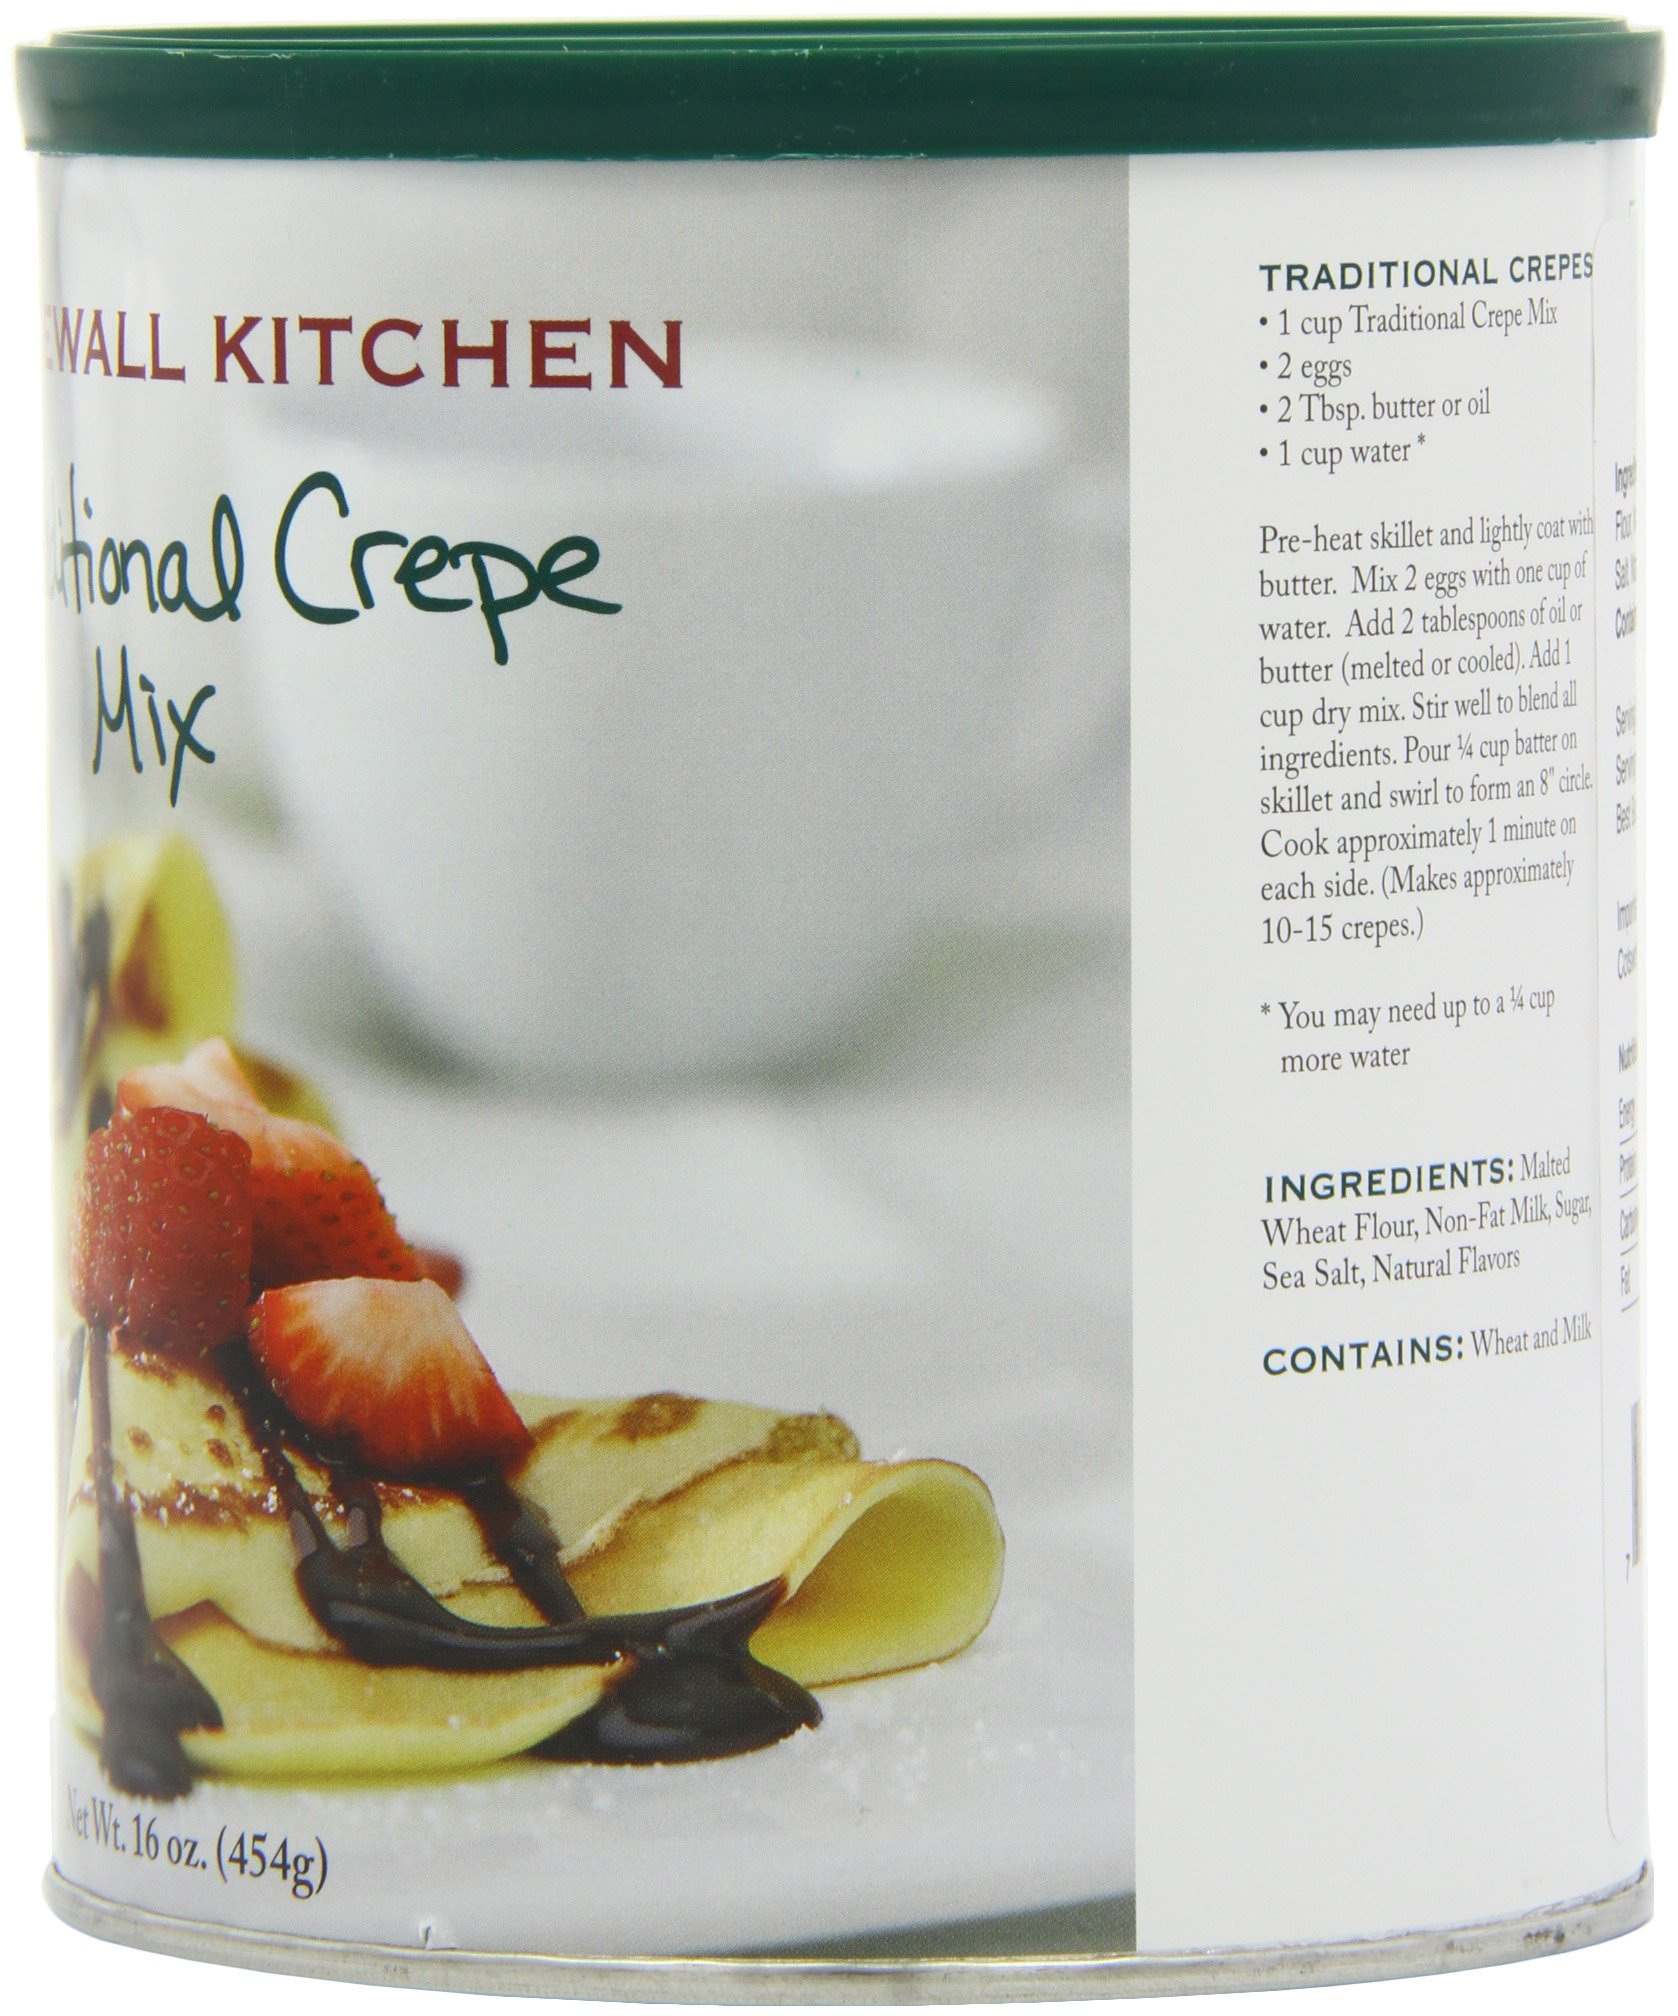 Stonewall Kitchens, Traditional Crepe Mix, 16-Ounce Canisters (Pack of 4) by Stonewall Kitchen (Image #4)